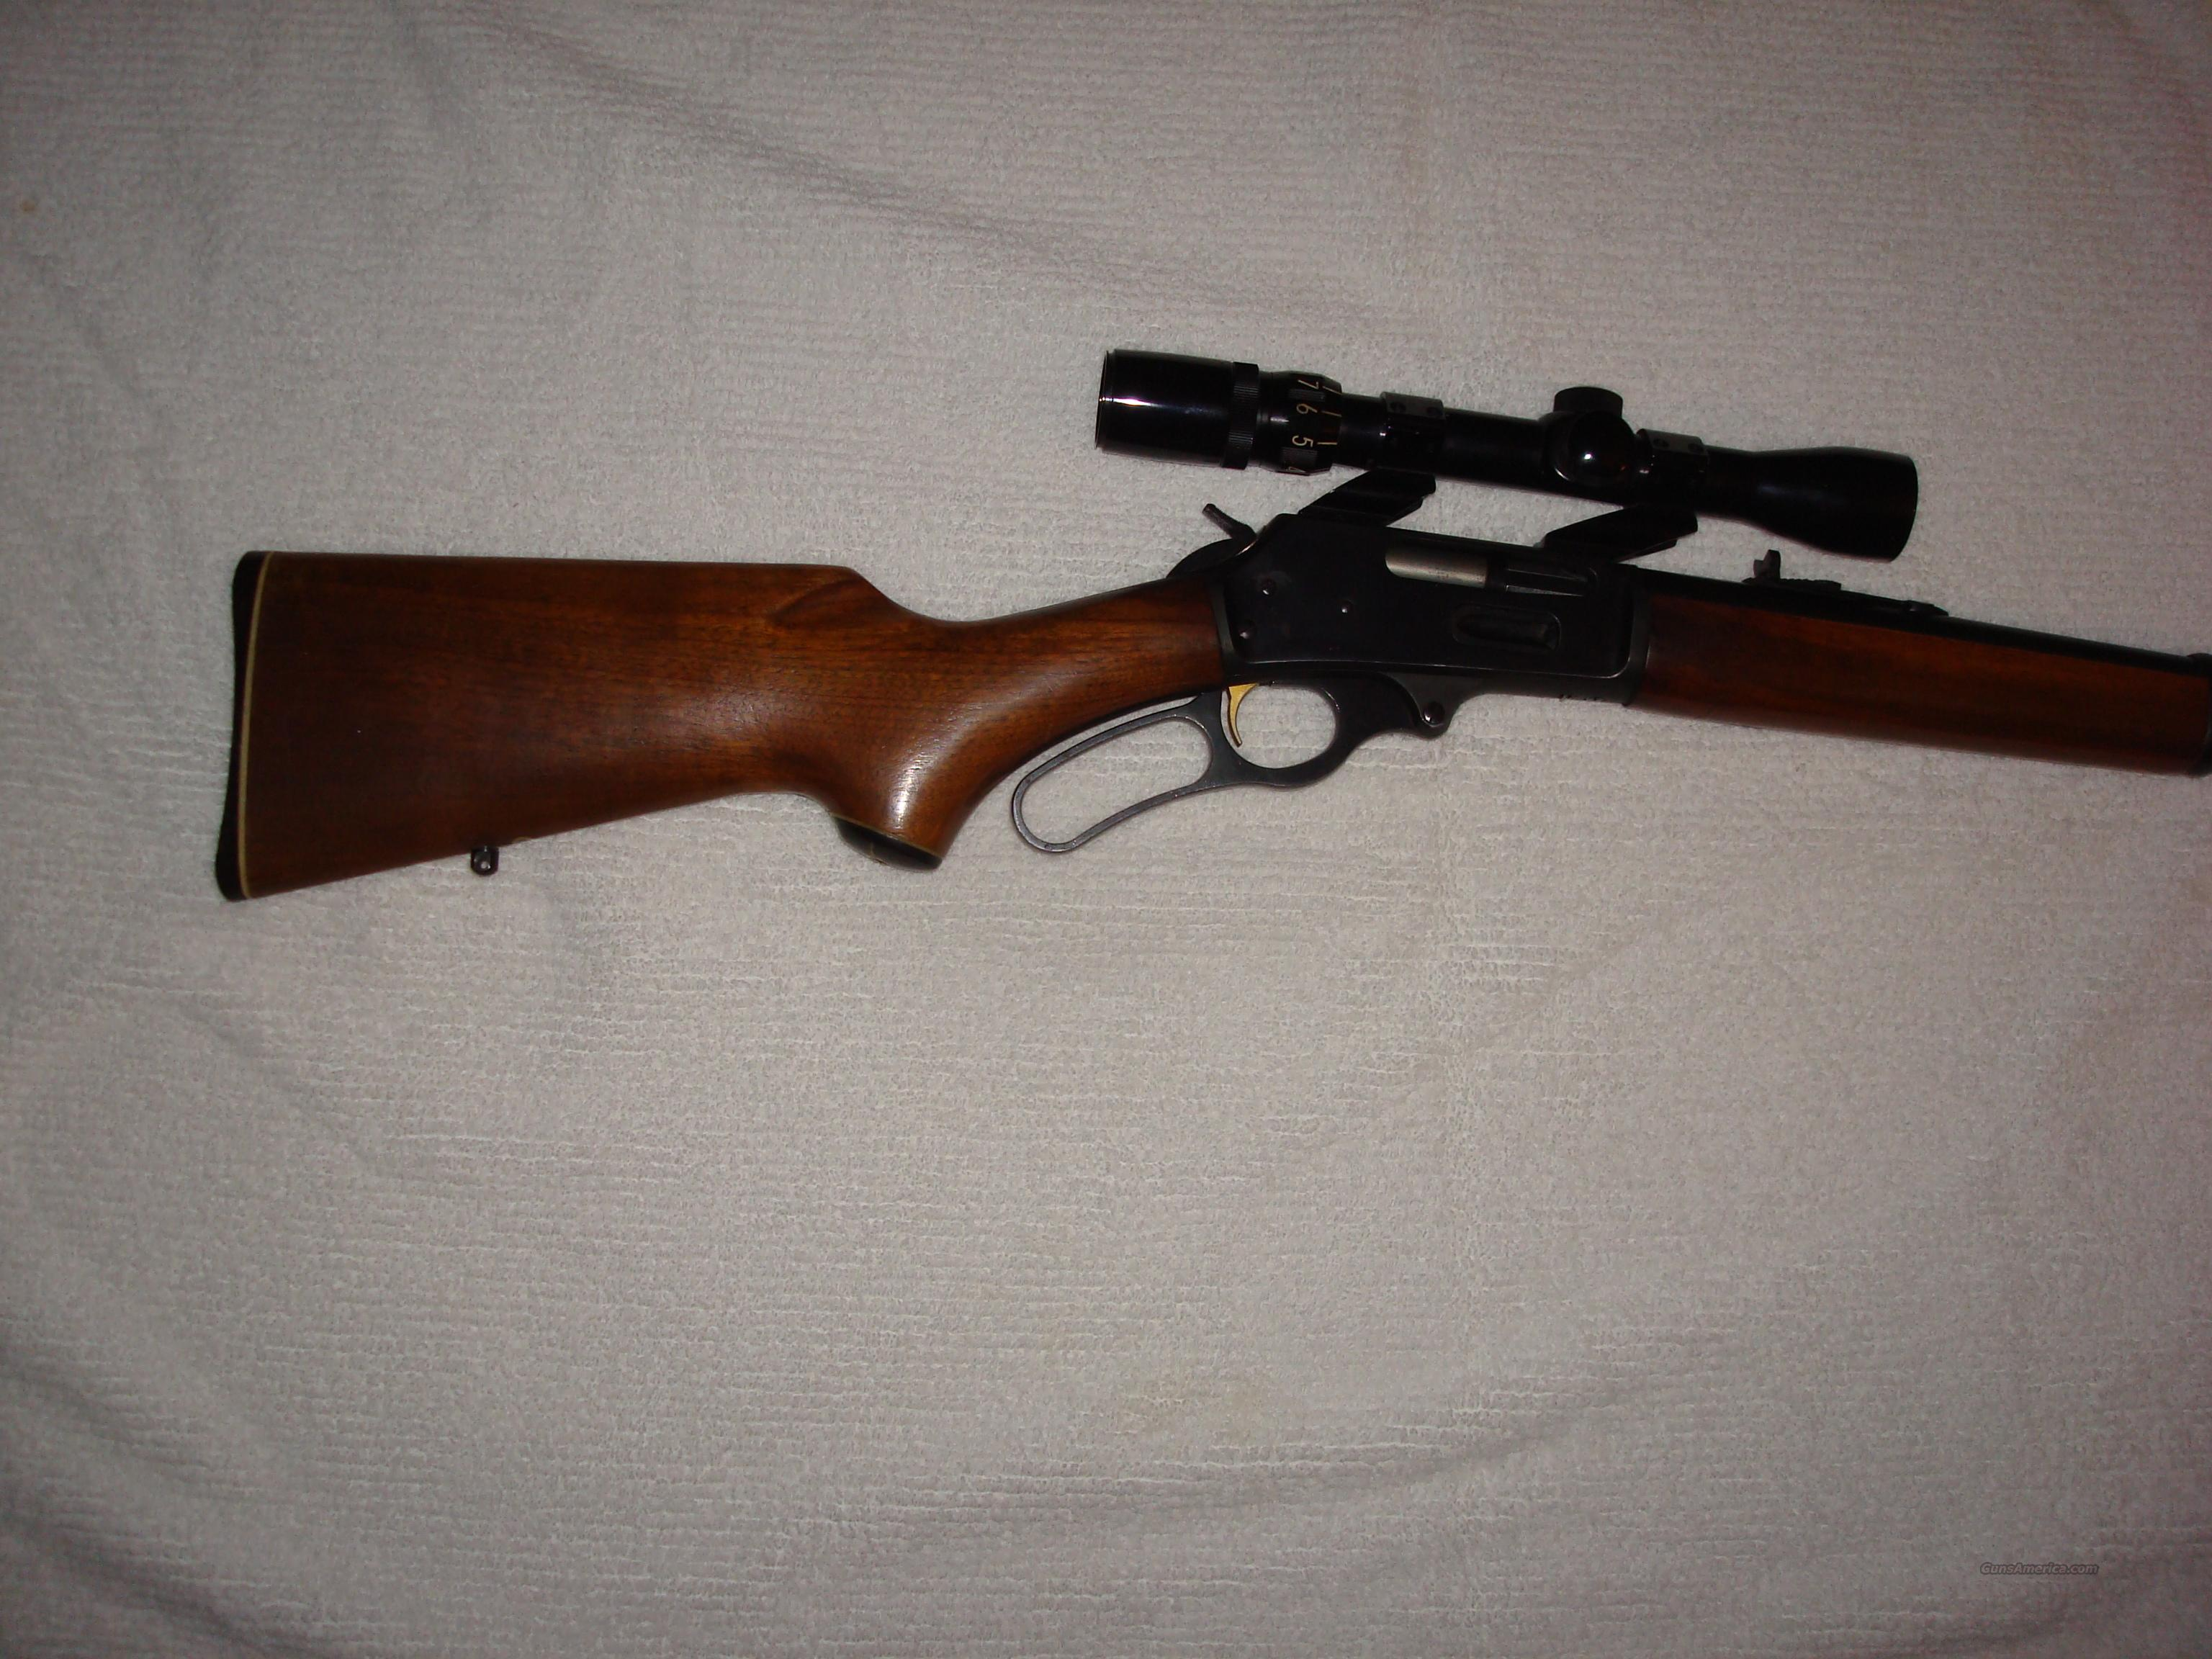 Marlin Model 336 in 35 Rem.  Guns > Rifles > Marlin Rifles > Modern > Lever Action